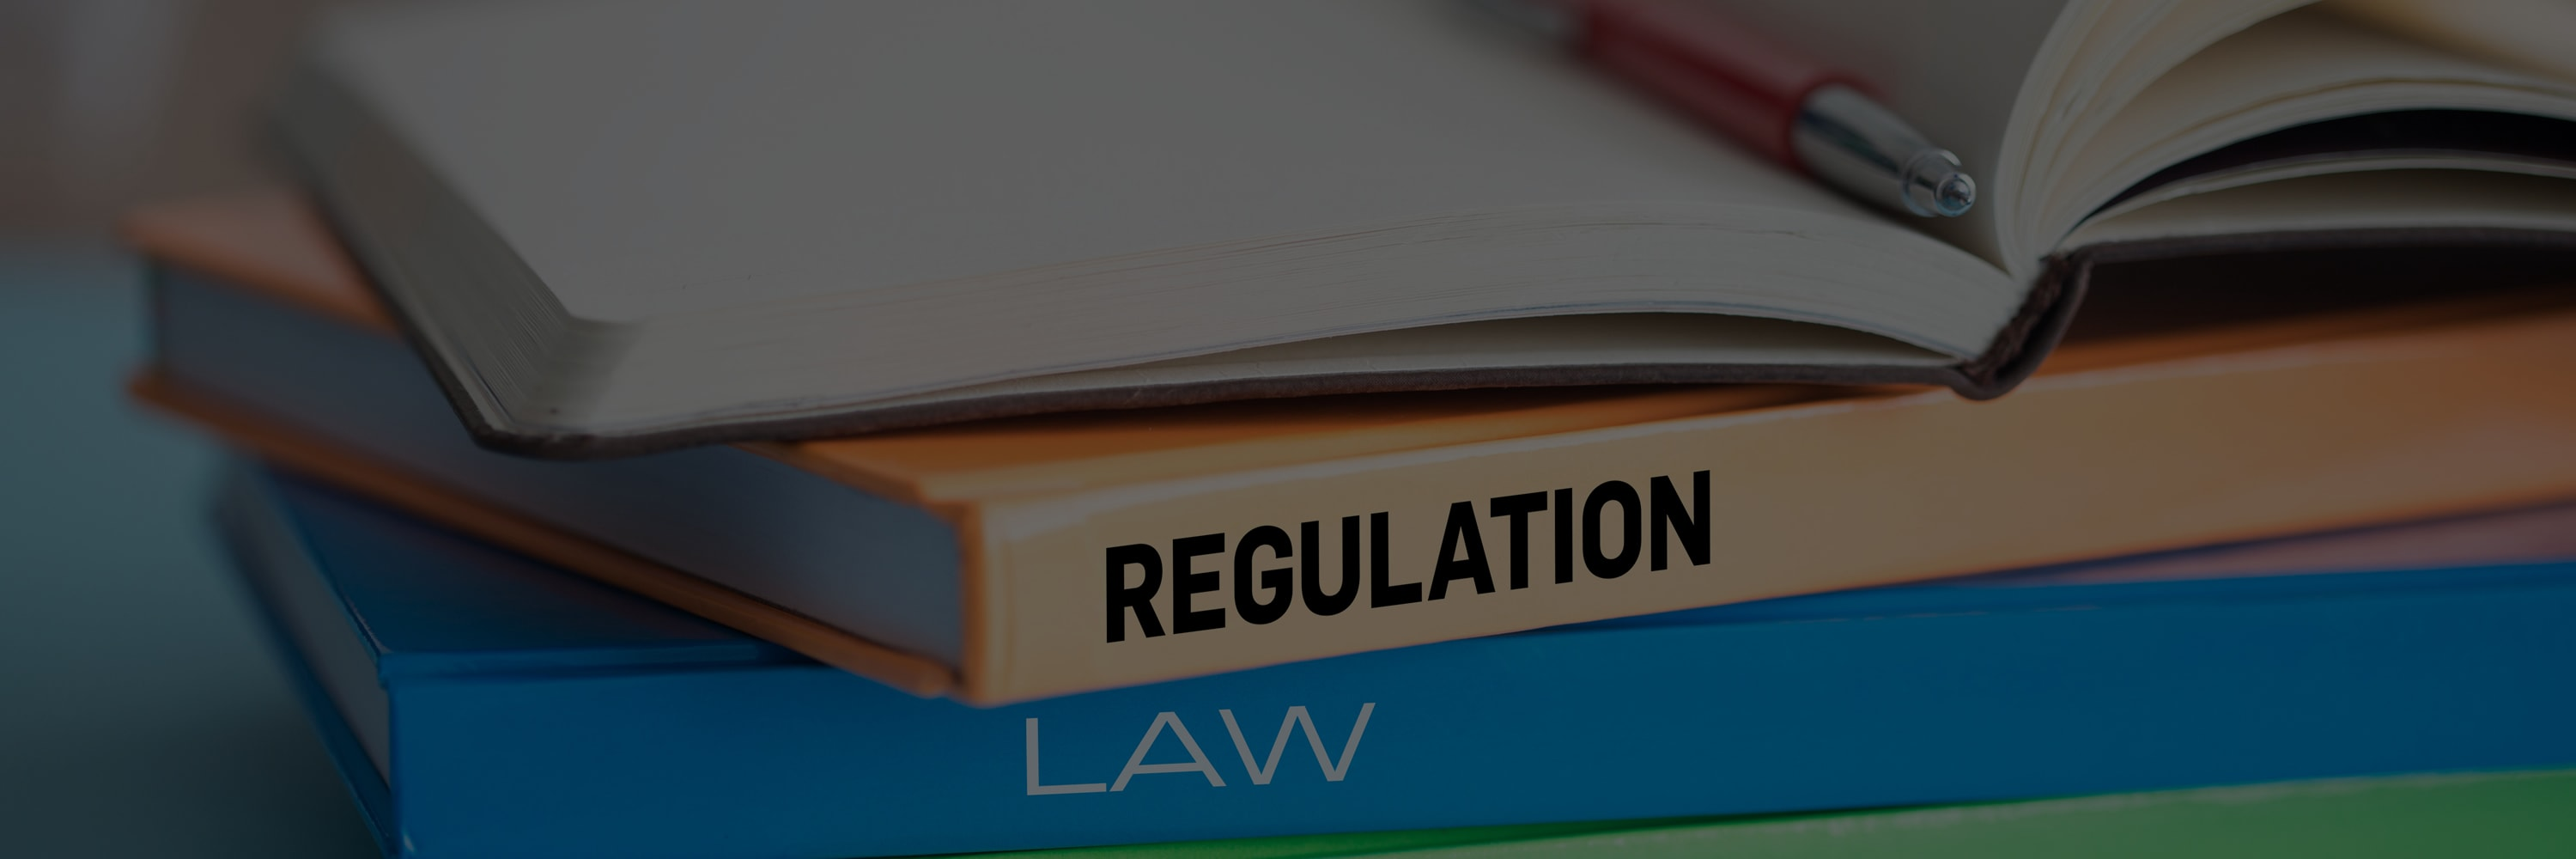 naem-webinar-2020-top-emerging-regulatory-issues-and-a-corporate-approach-to-management-1800x600